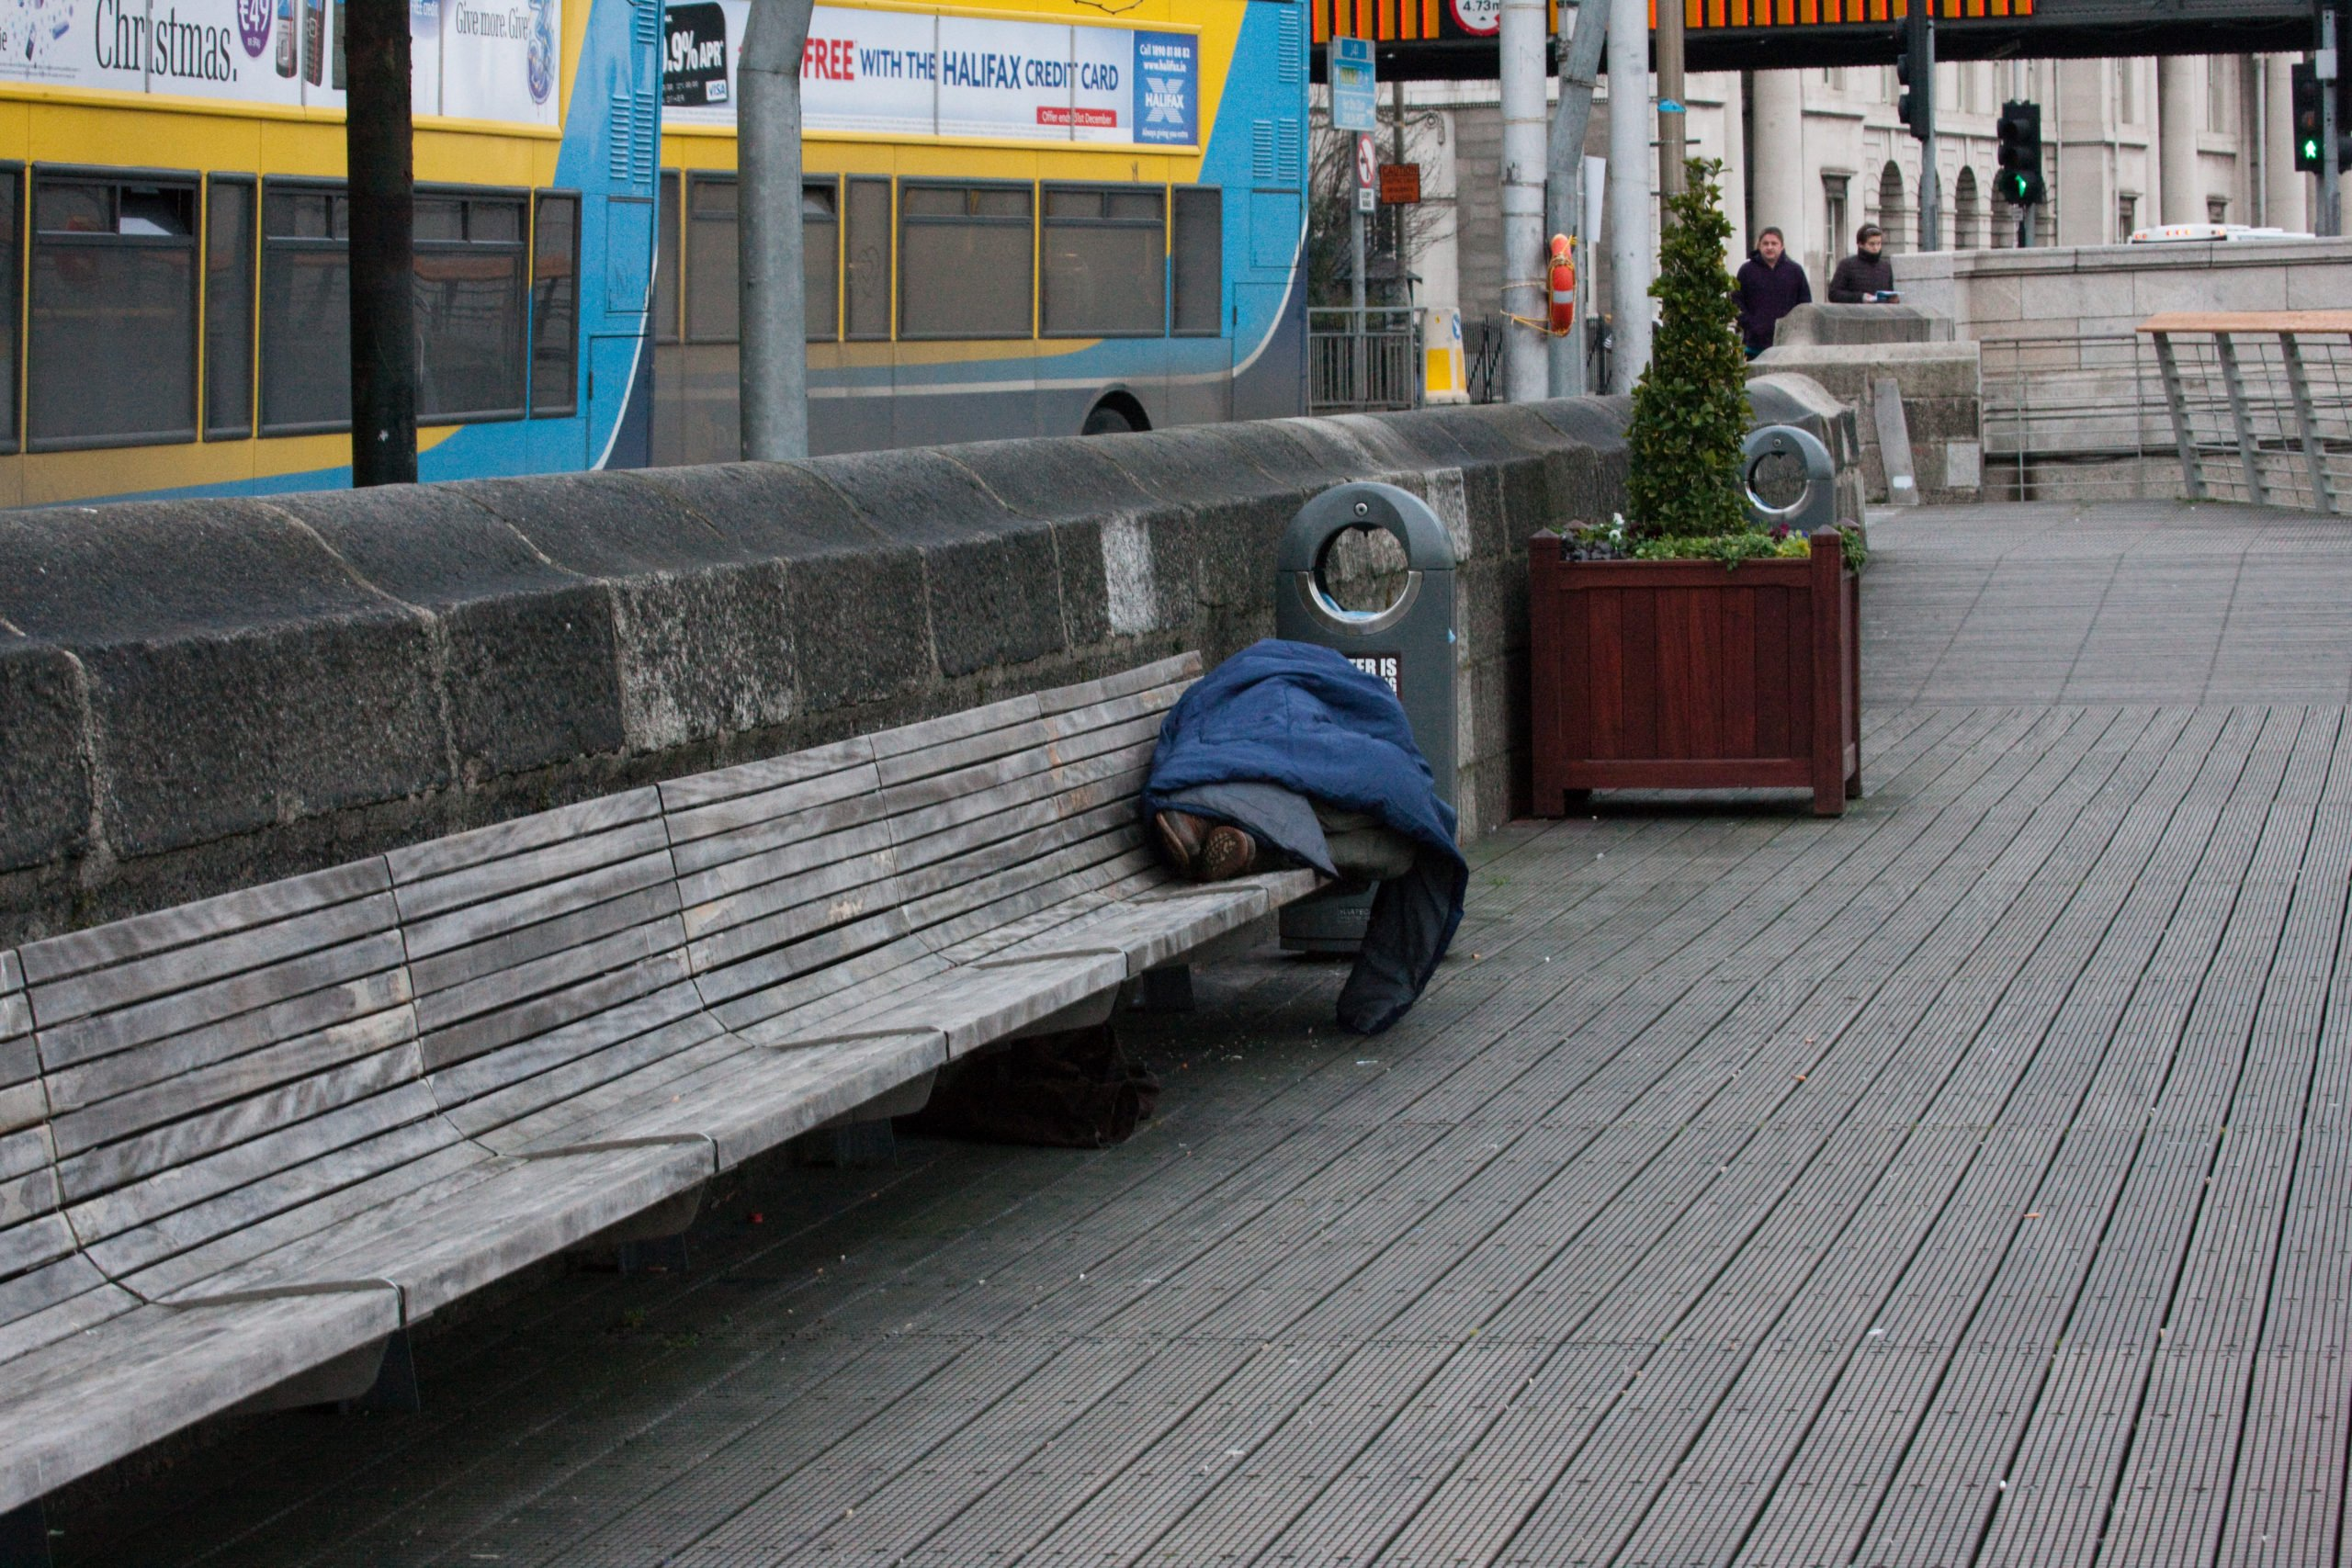 Ireland's Homeless: A Continued Crisis during COVID-19